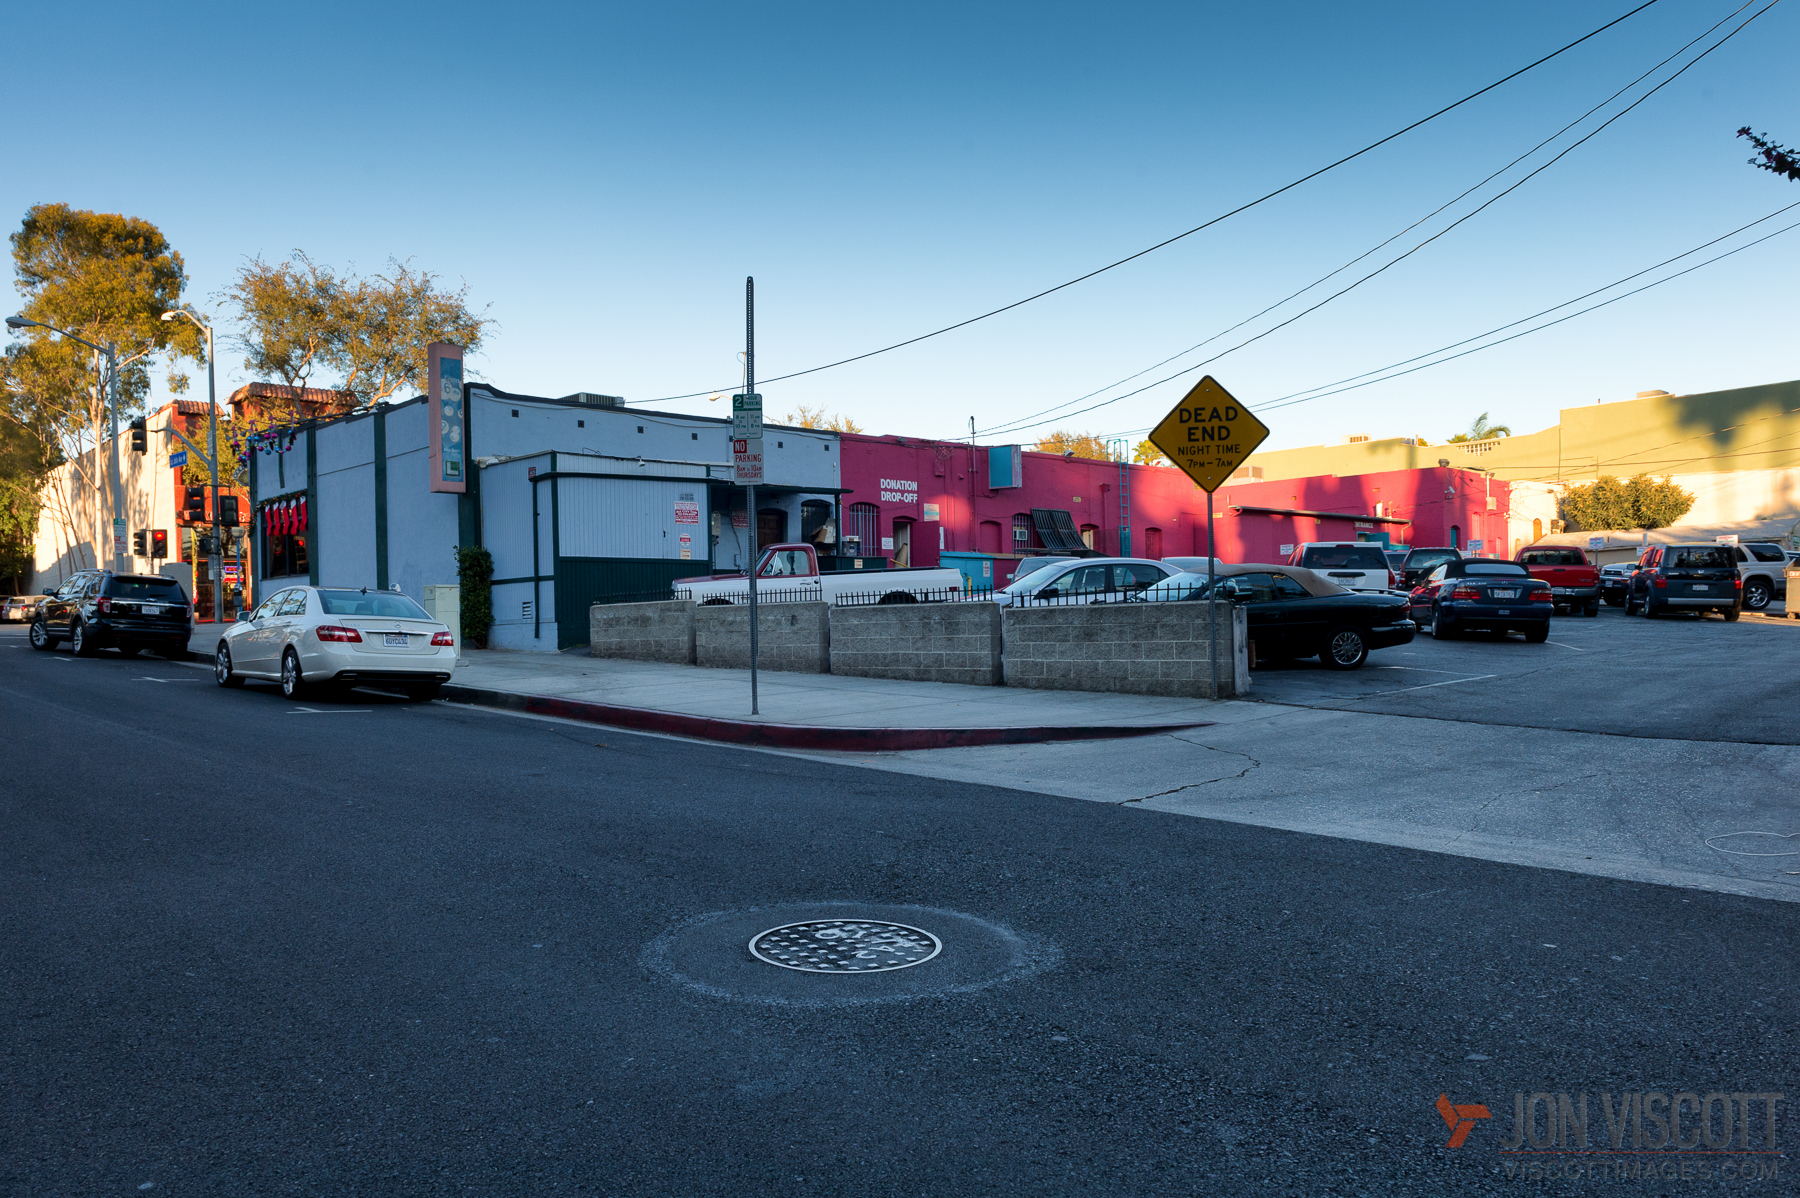 """... and which some want to memorialize by have the City Council officially recognize it as """"Vaseline Alley"""" (Photo by Jon Viscott)"""